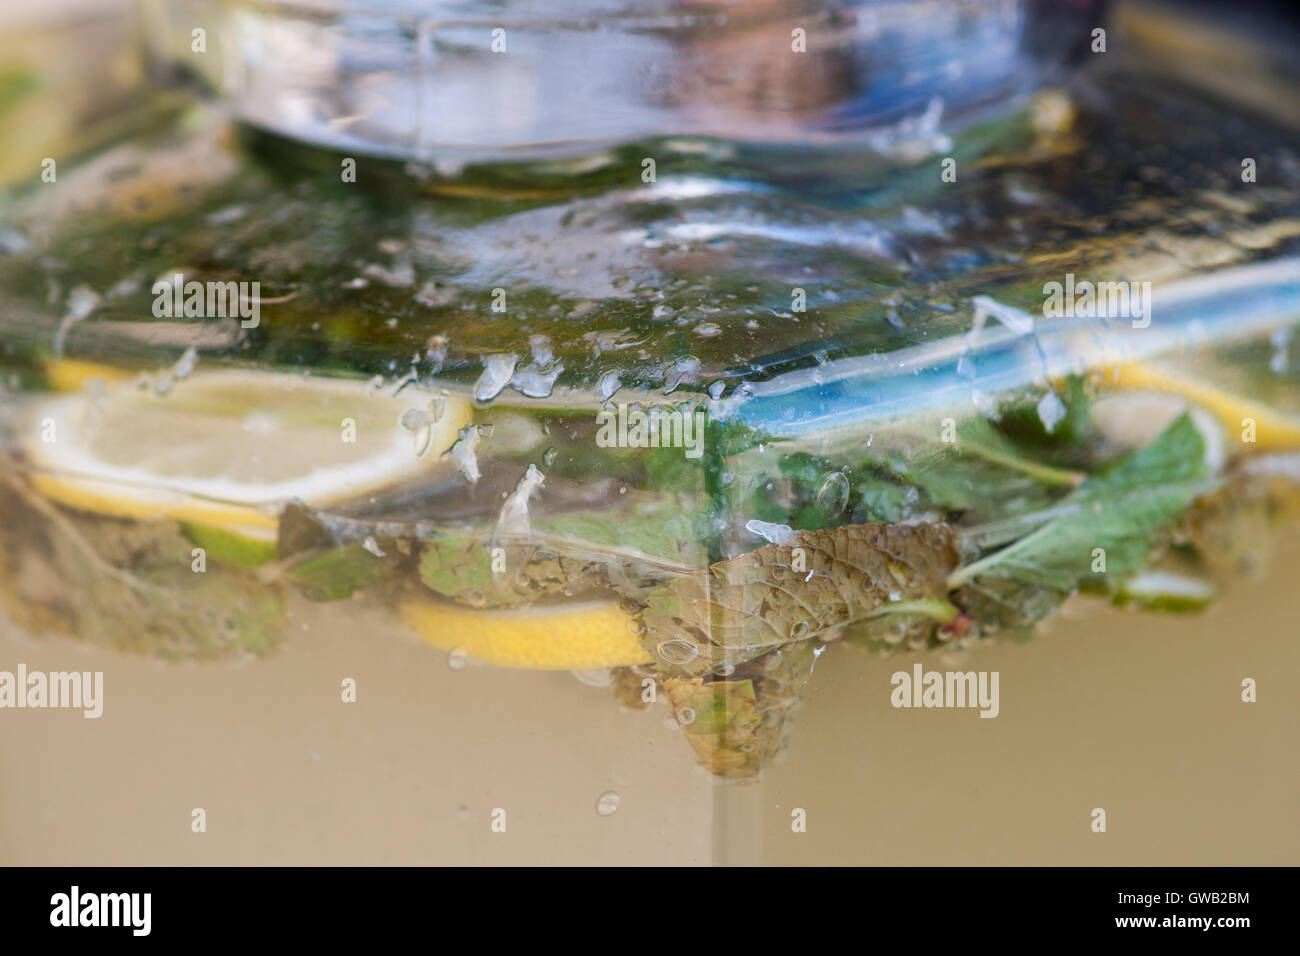 Home made lemonade in a large rectangular shape jar. Lemon and mint inside. Soft summer drink - Stock Image